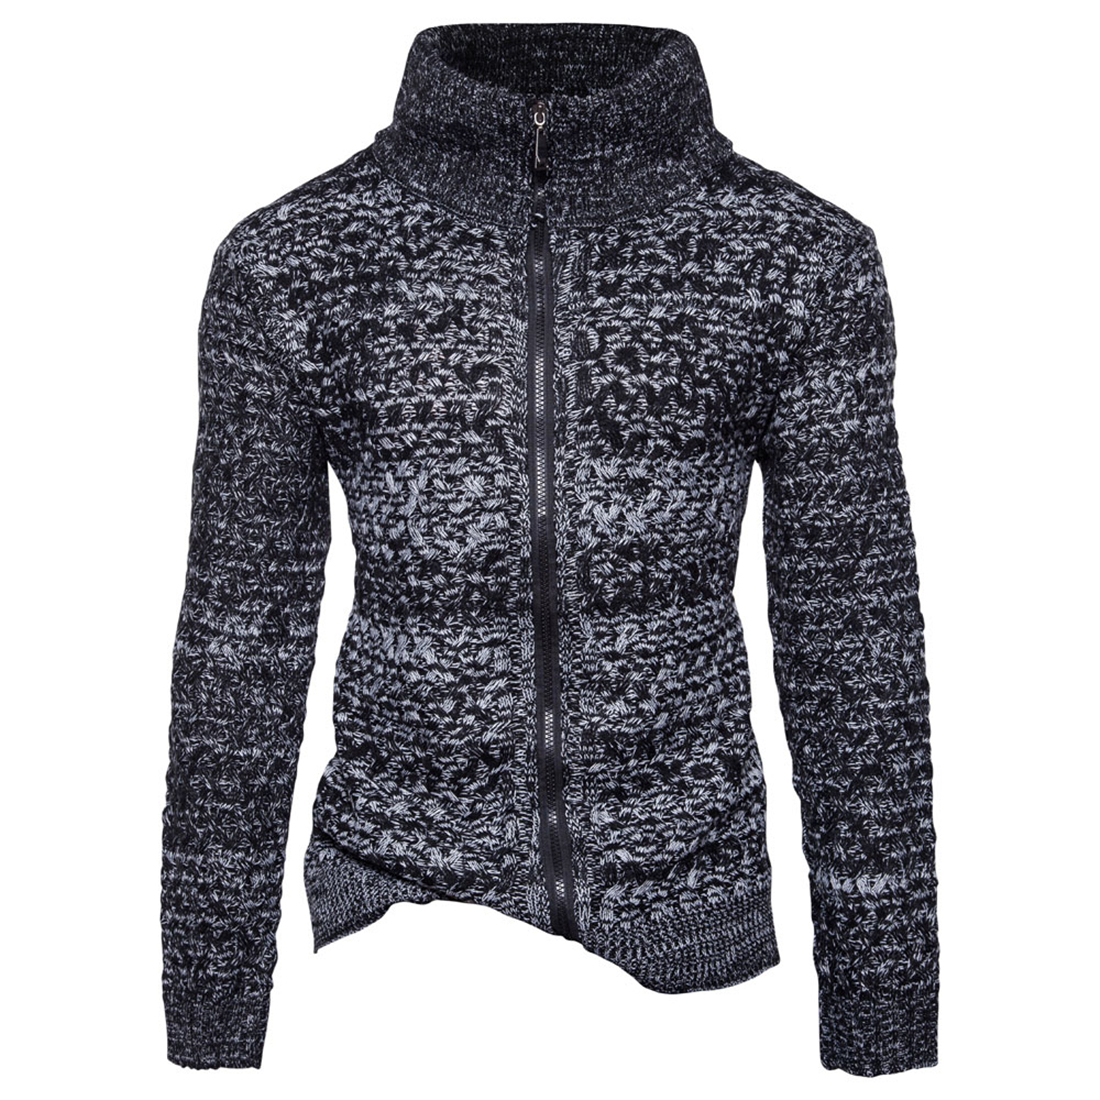 Brand Mens Sweater Zip Up Cardigan Turtleneck Knitted Winter Warm Solid Long Slim Fit Knit Sweater Jacket Coat Sweatercoat Thick